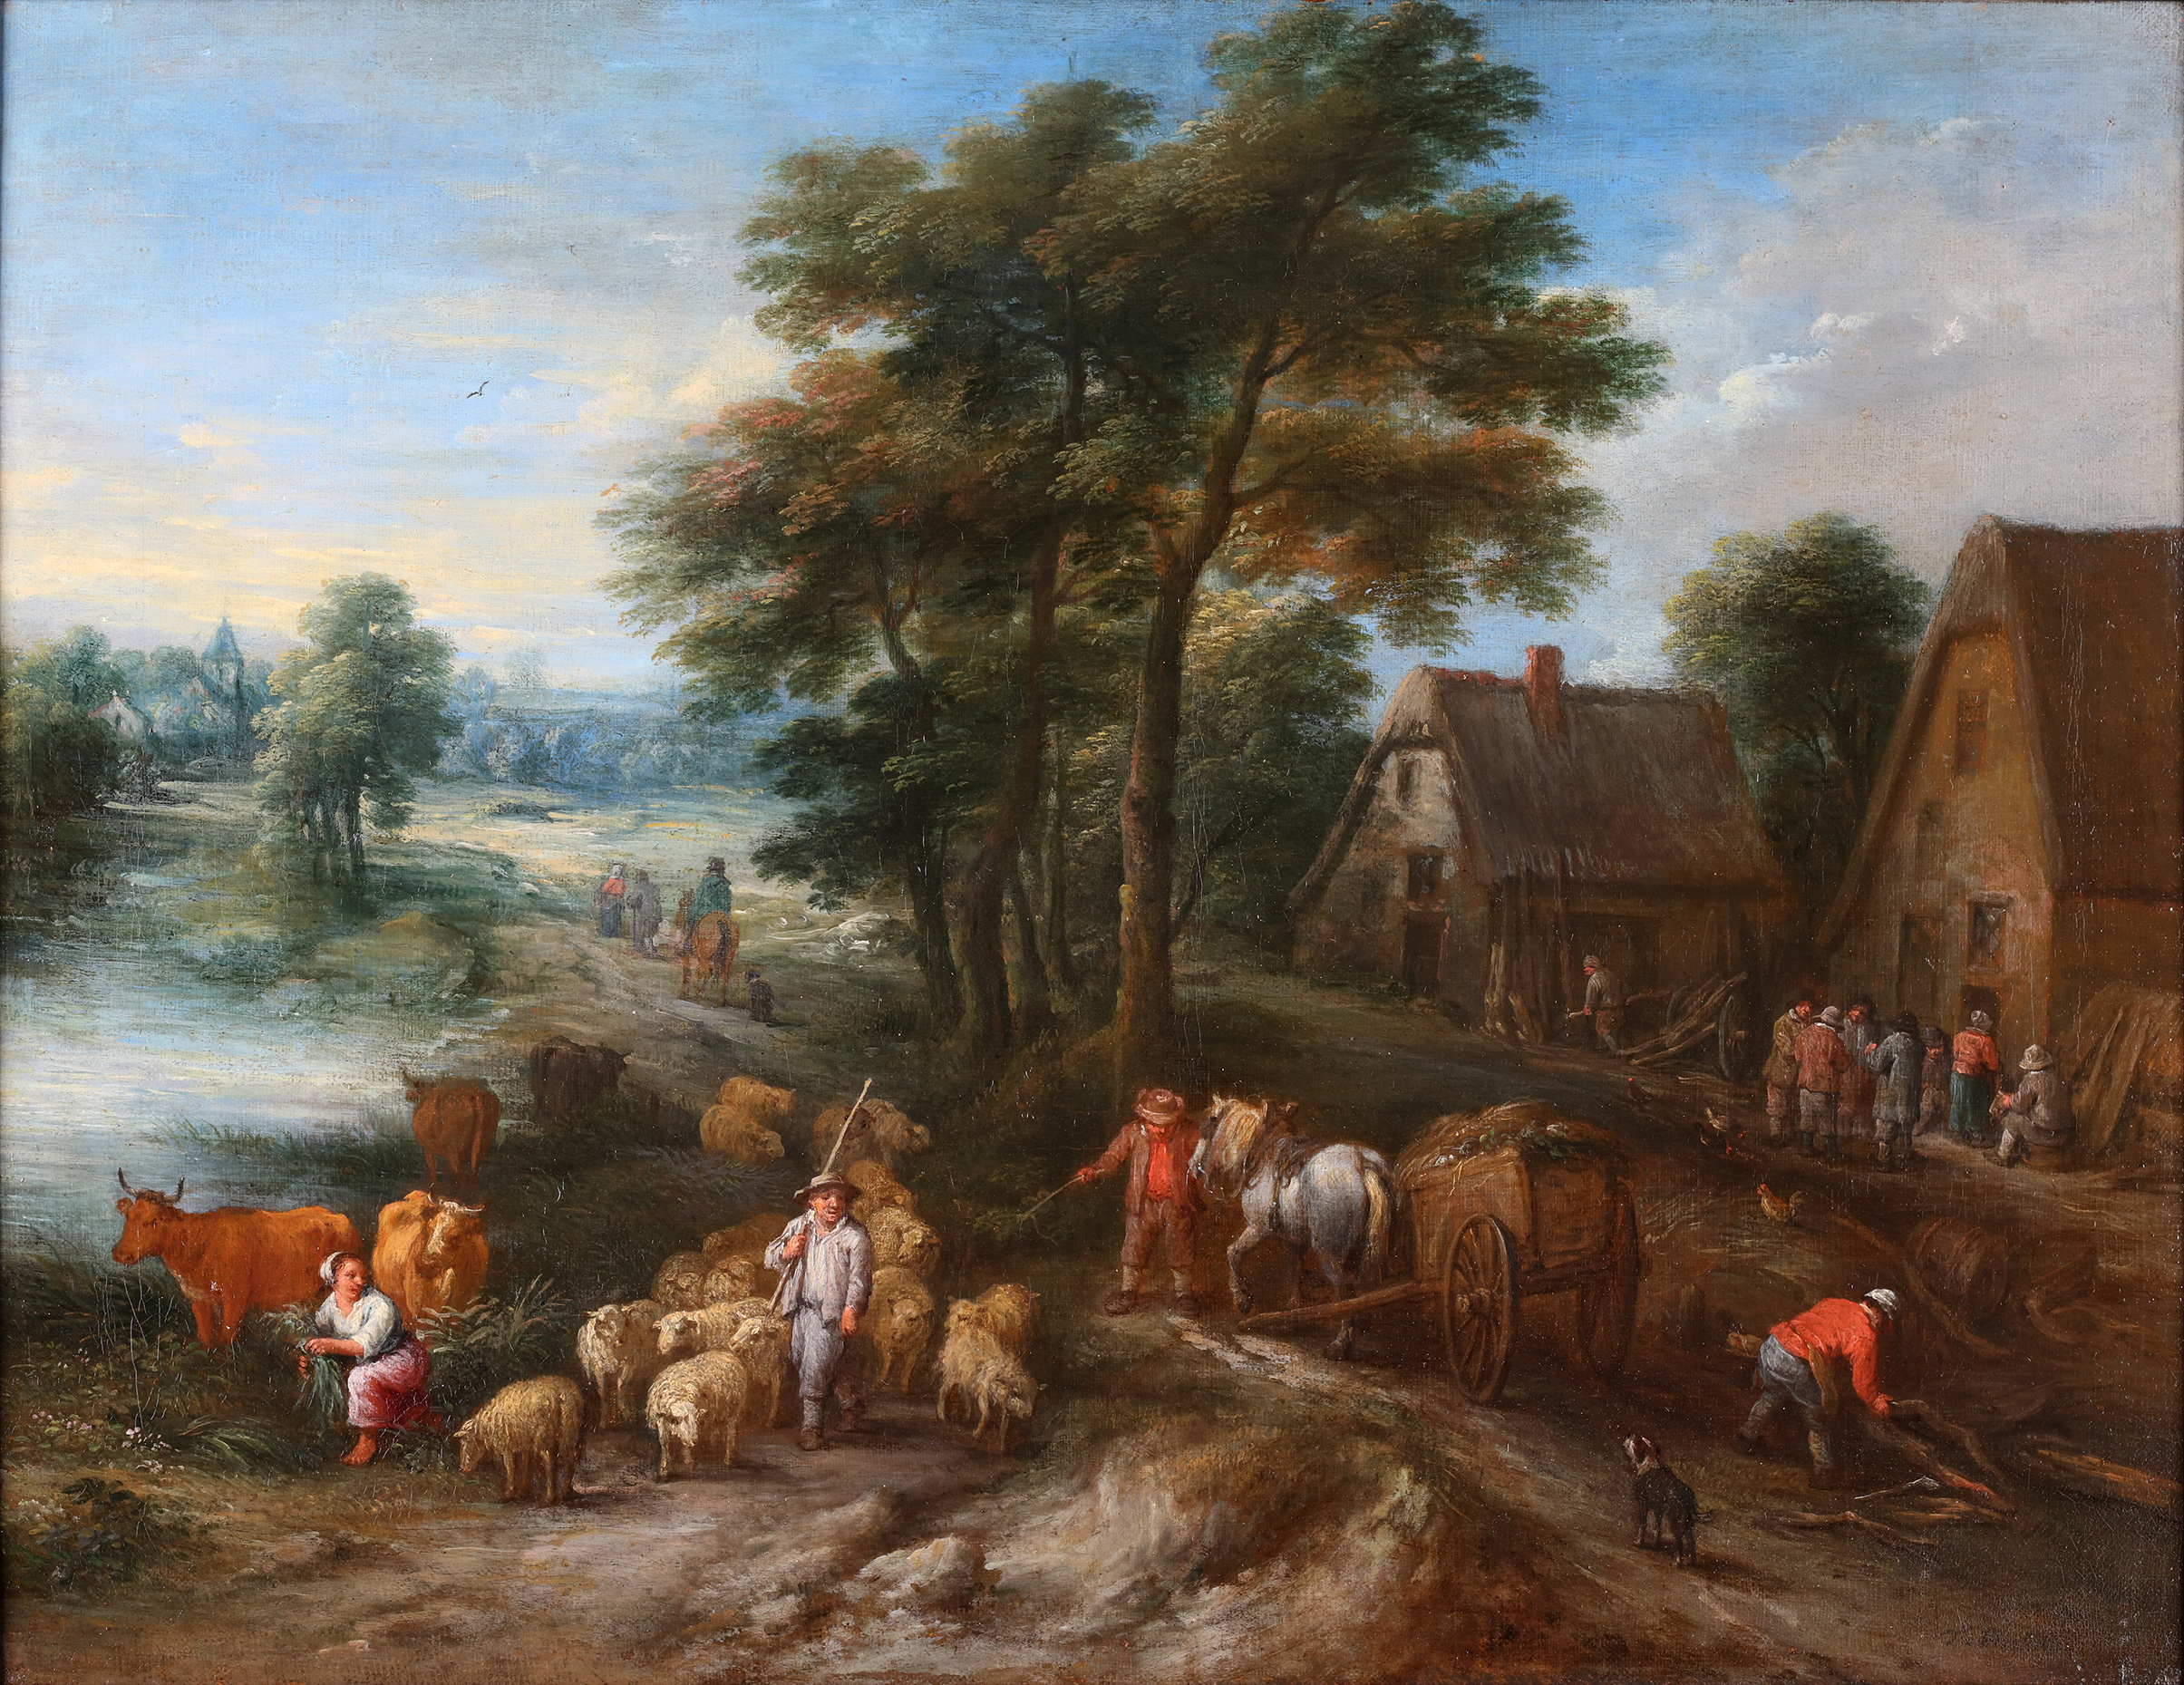 An animated landscape with peasants at work